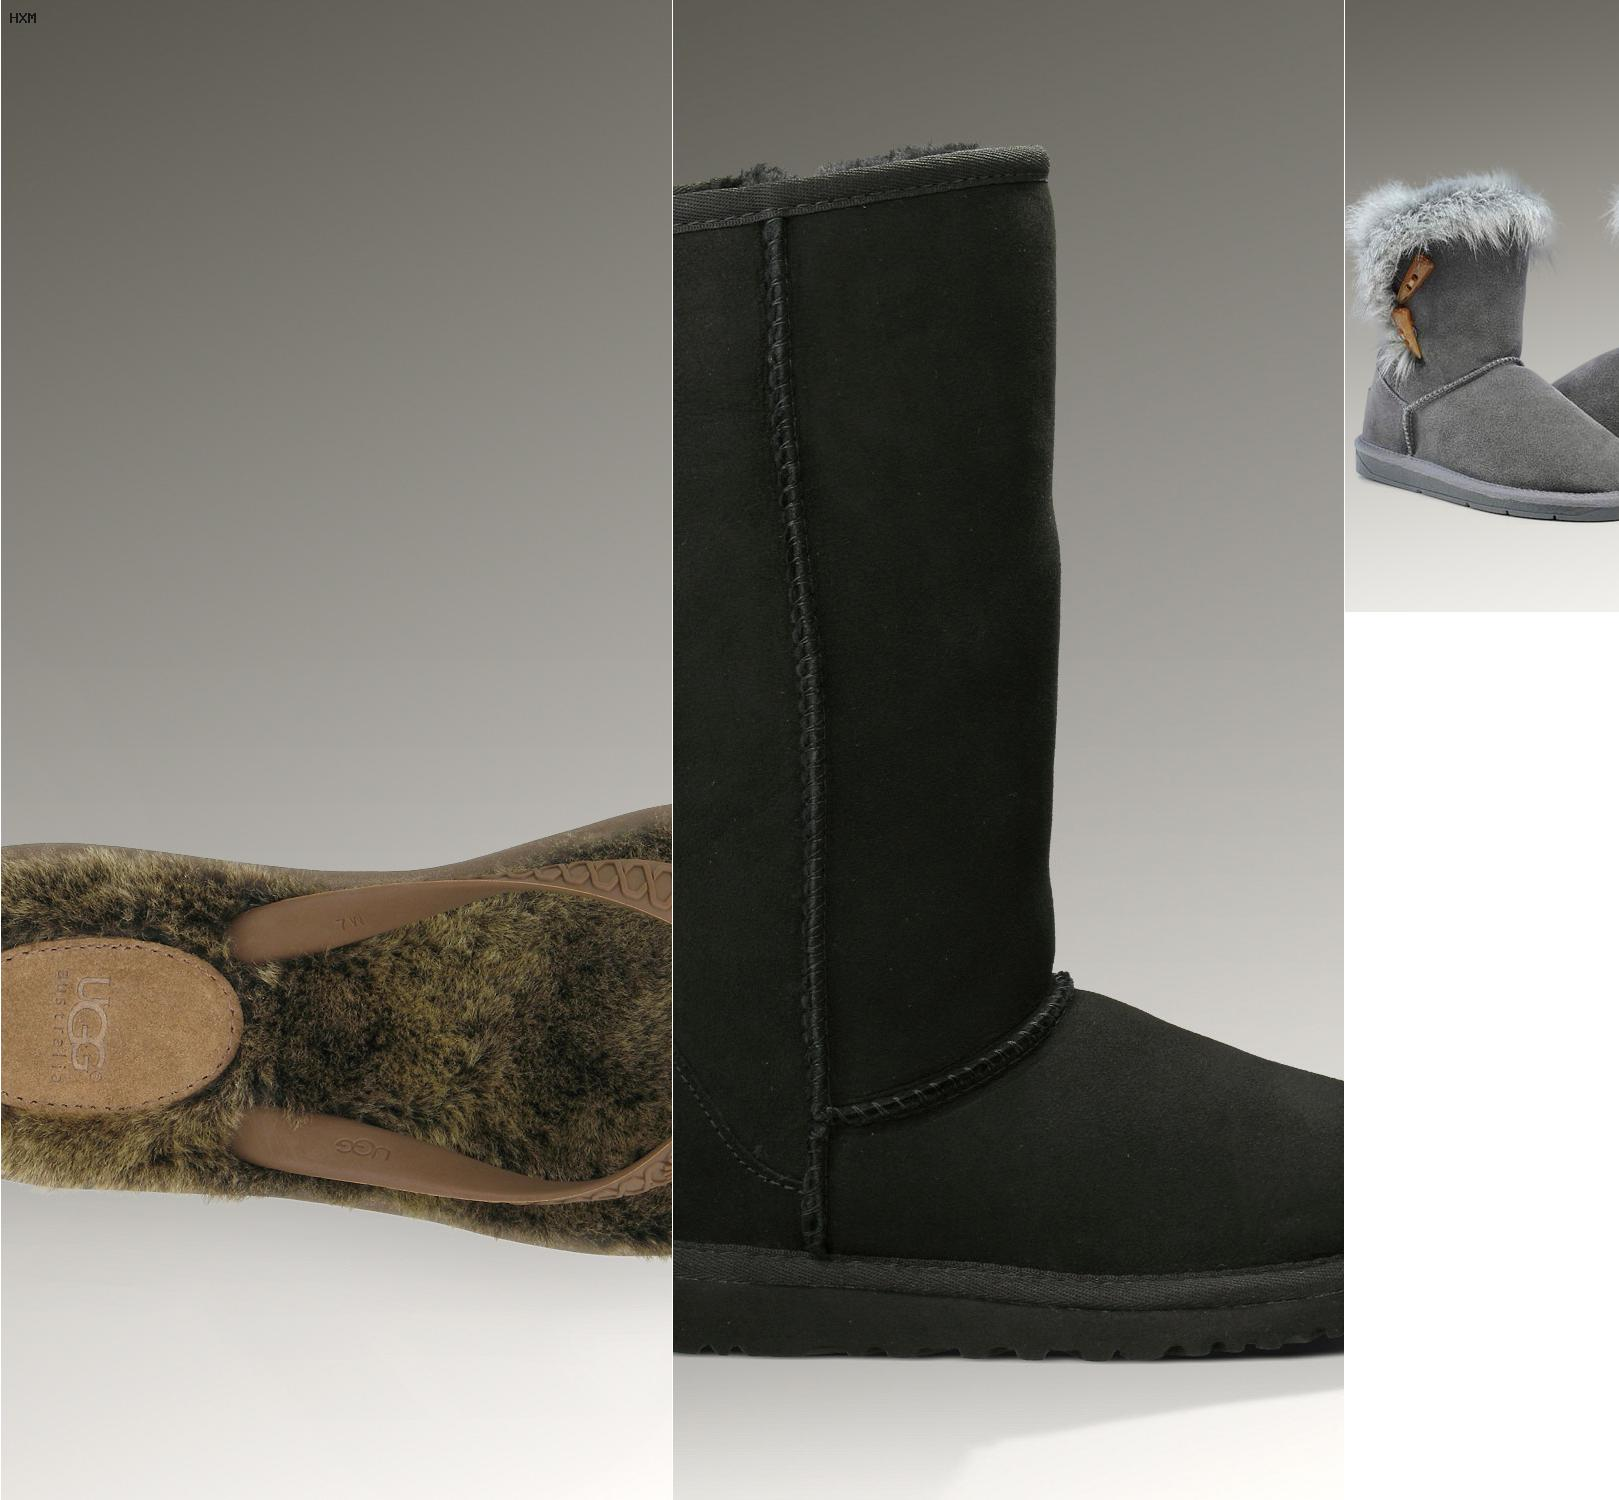 Ugg Outlet Boots Factory Australia Boots Factory Ugg Australia rdeoCBx